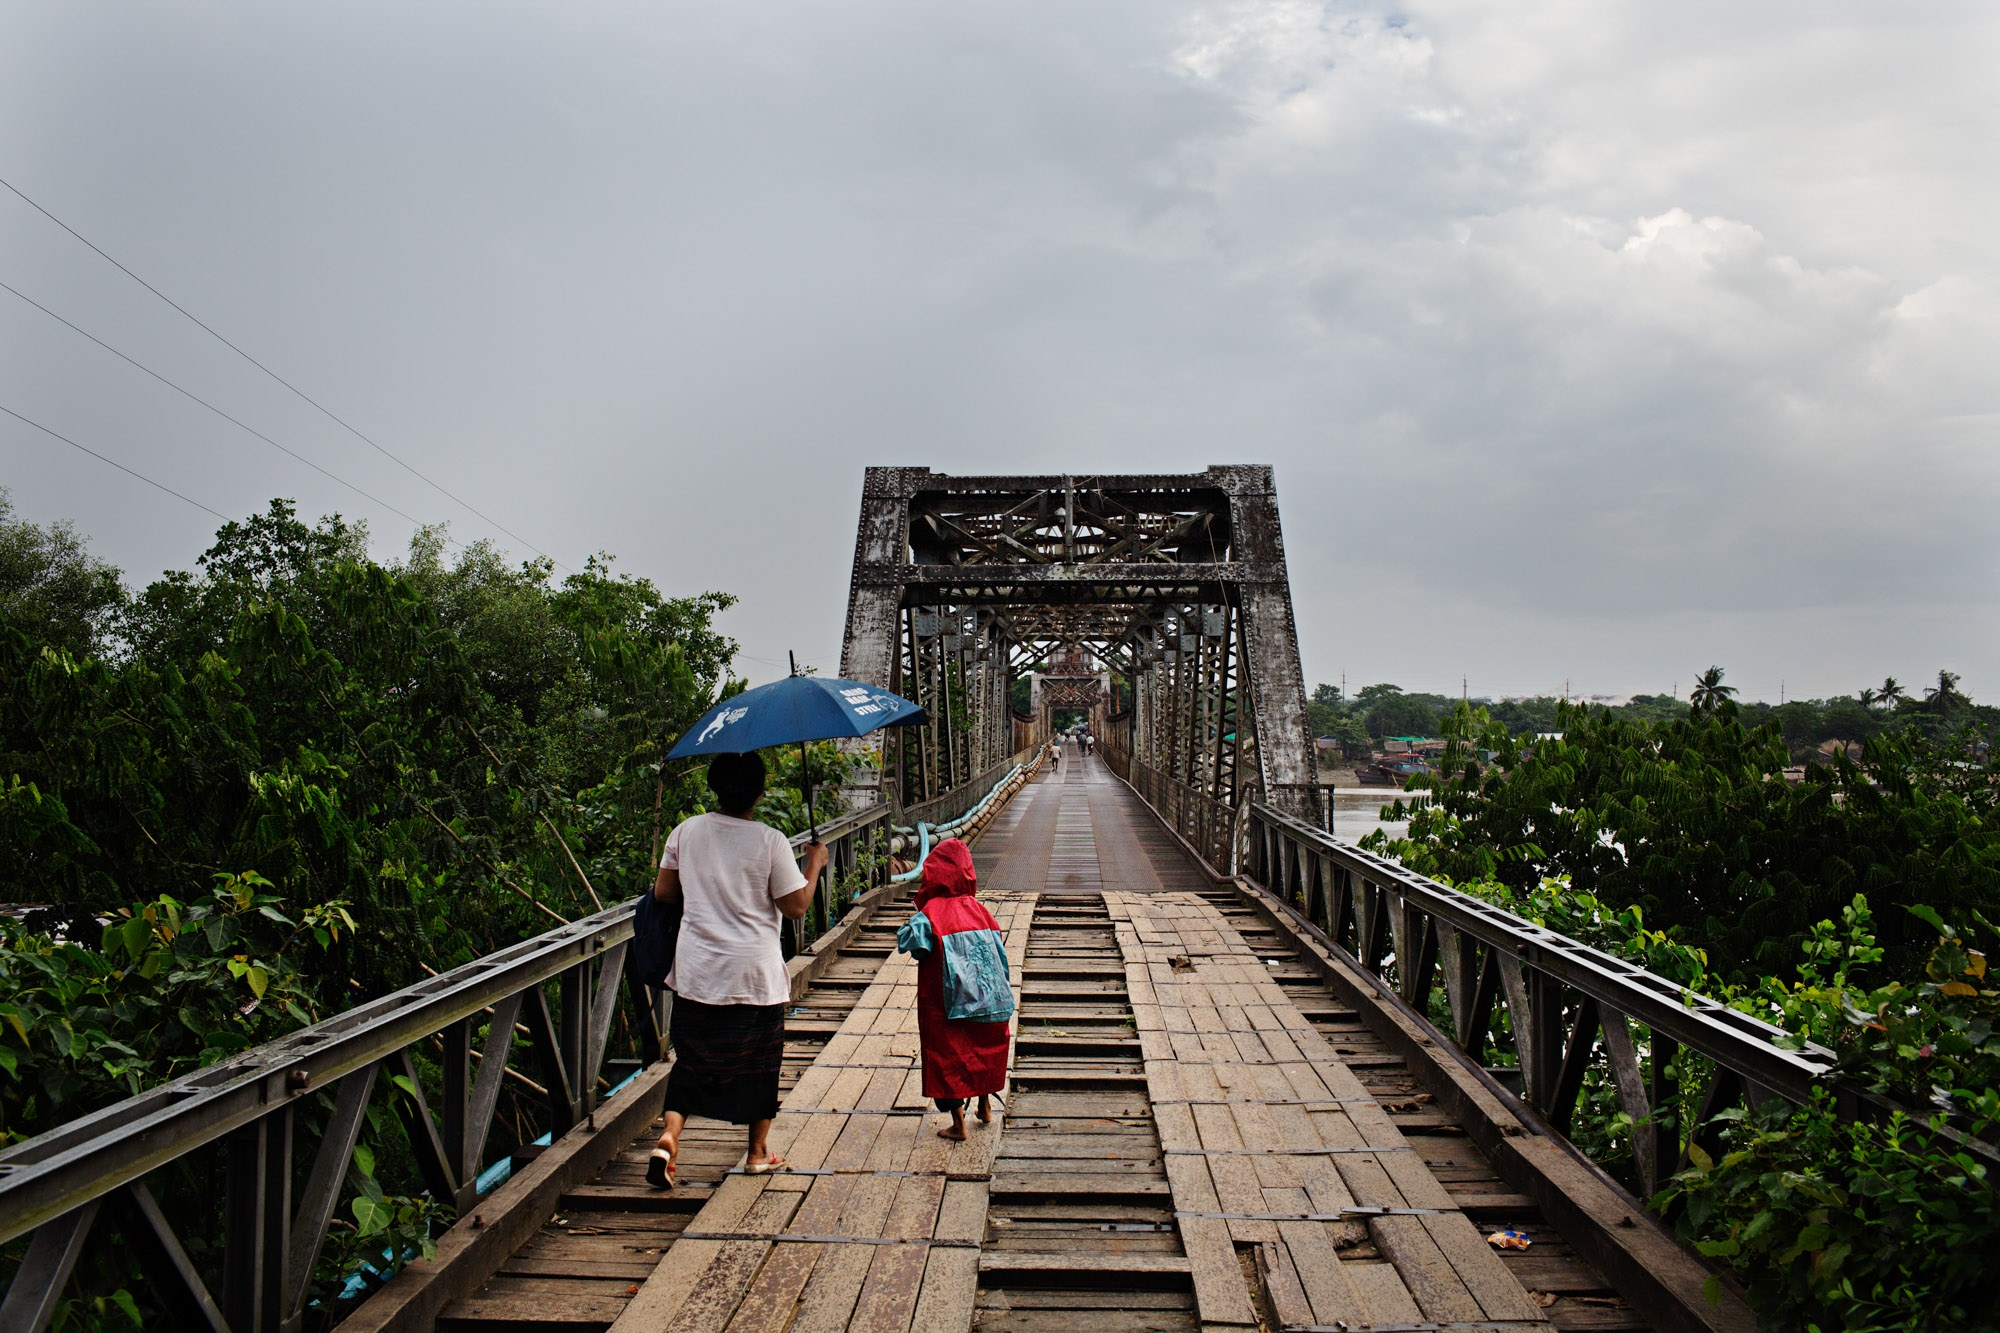 People walk across the bridge that leads to the gravel mining area.